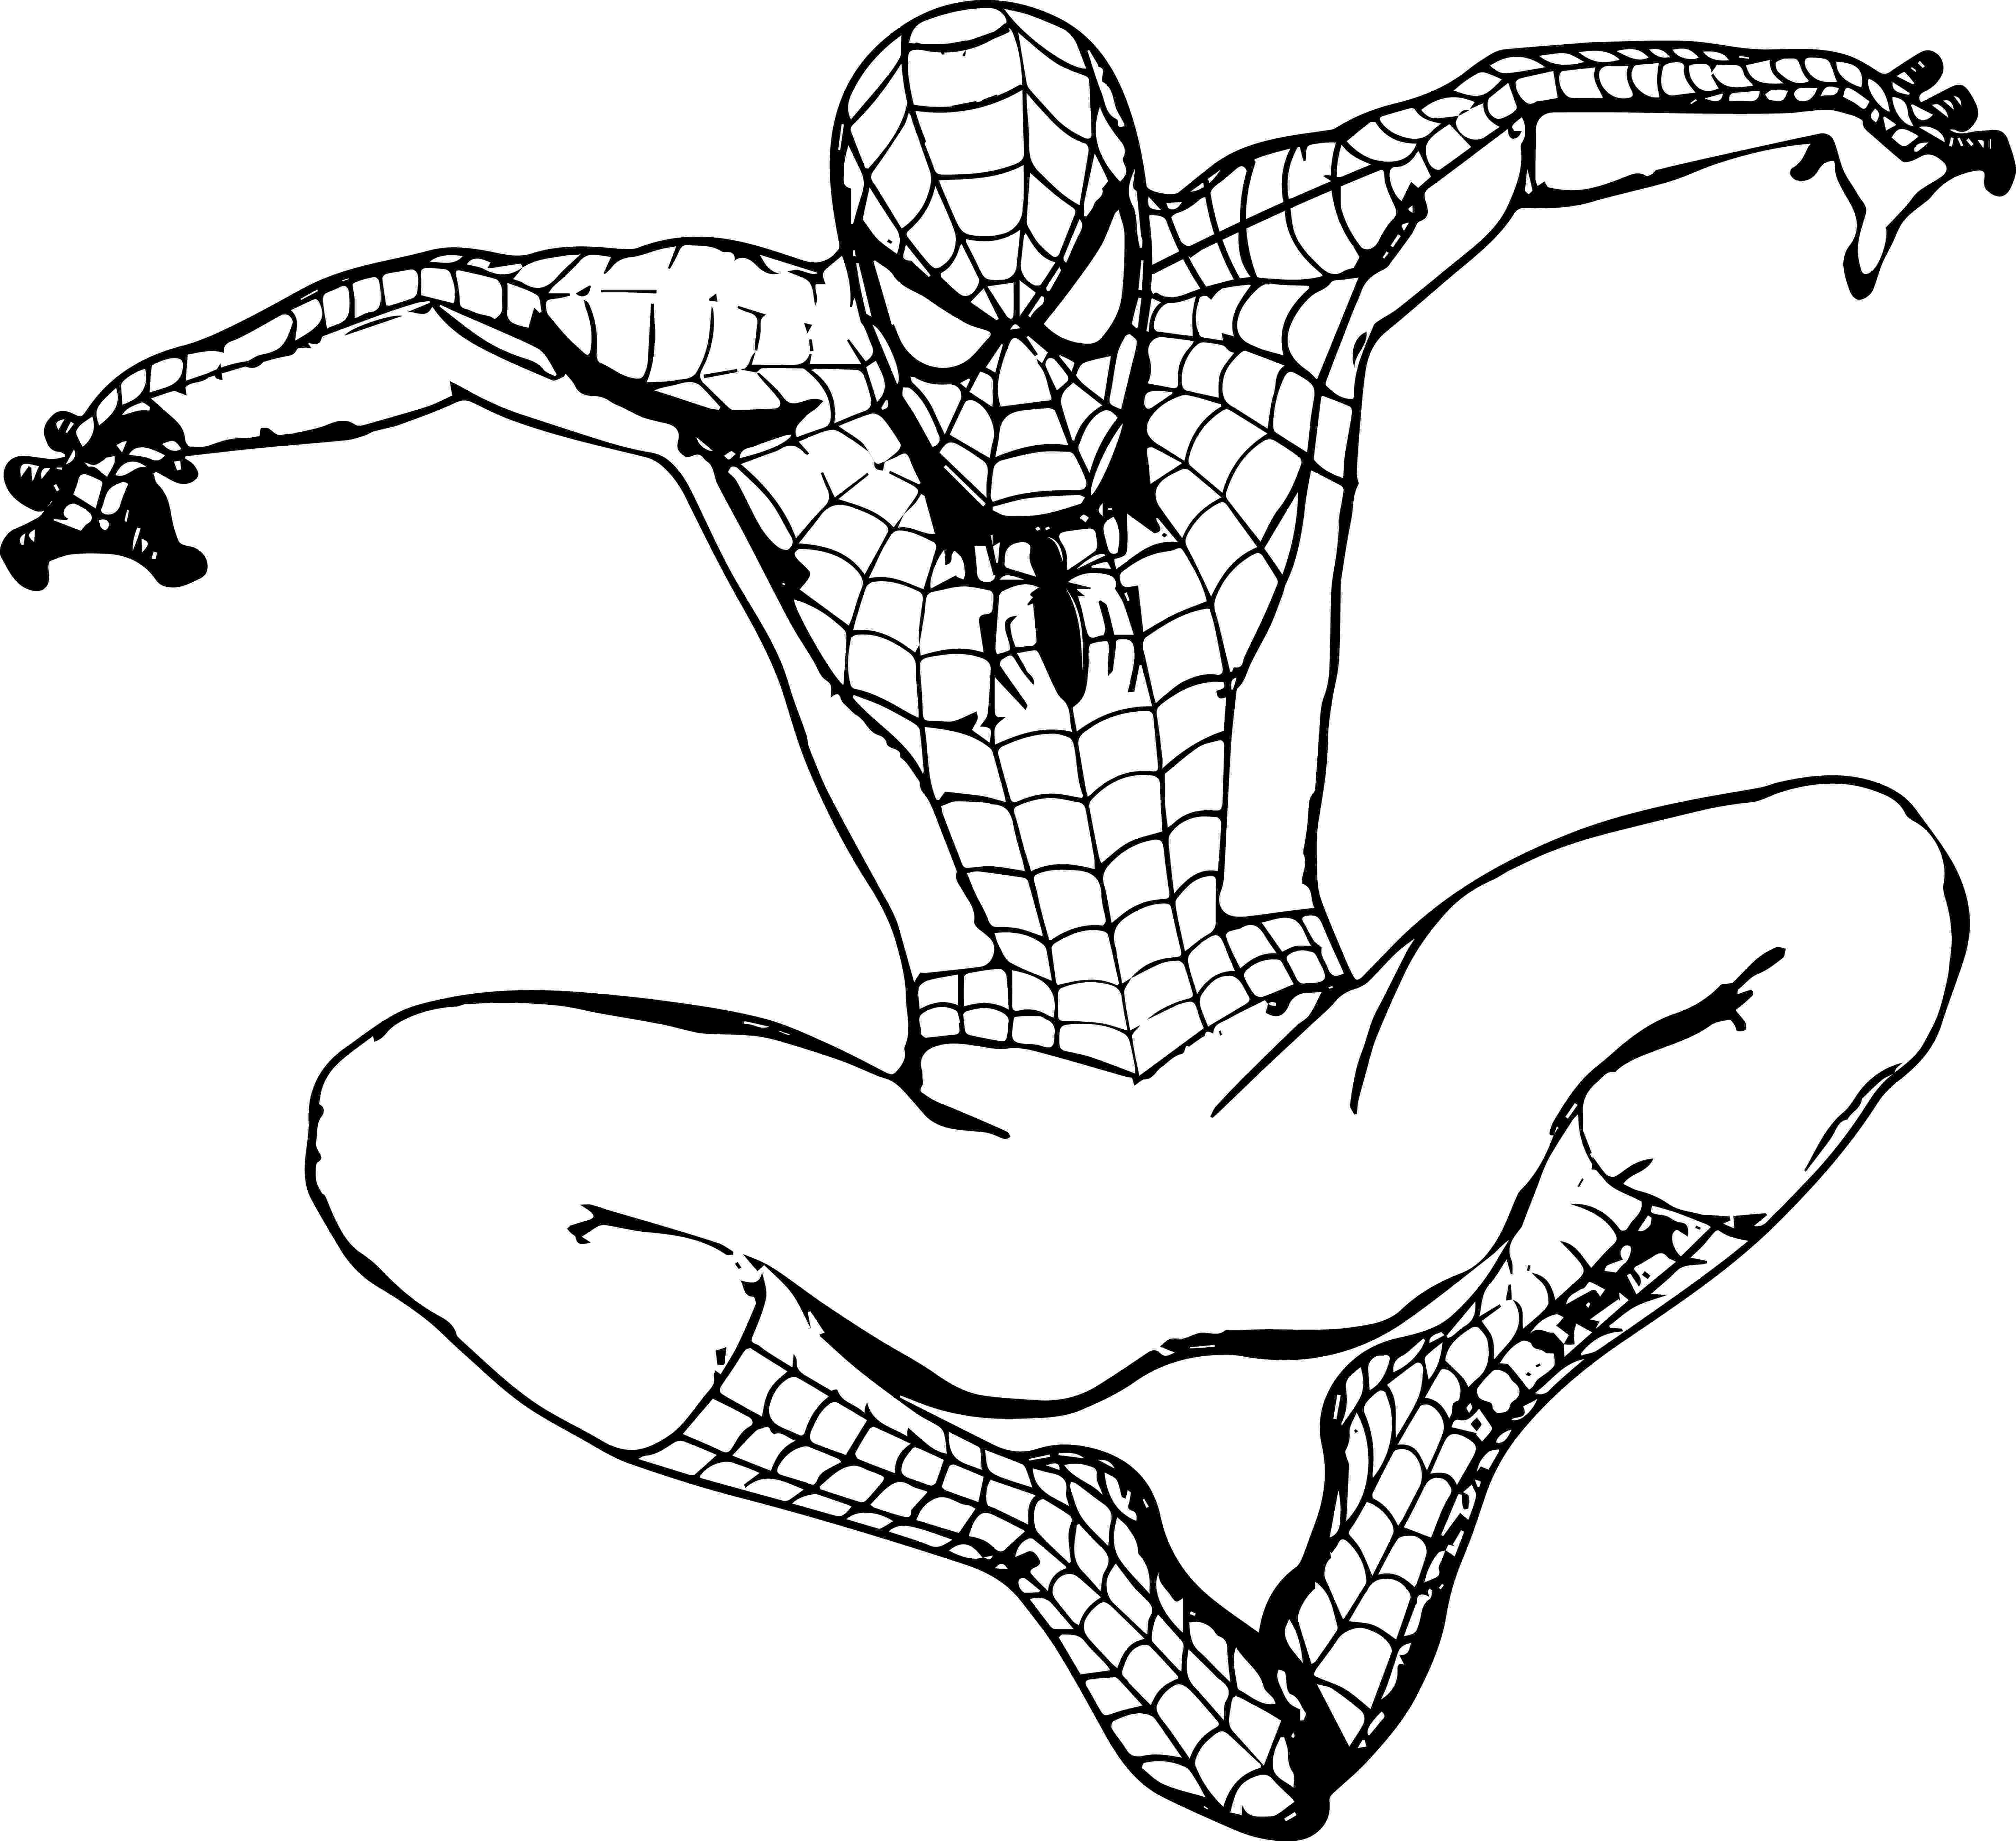 spiderman coloring sheet the amazing spider man coloring pages spiderman color sheet coloring spiderman